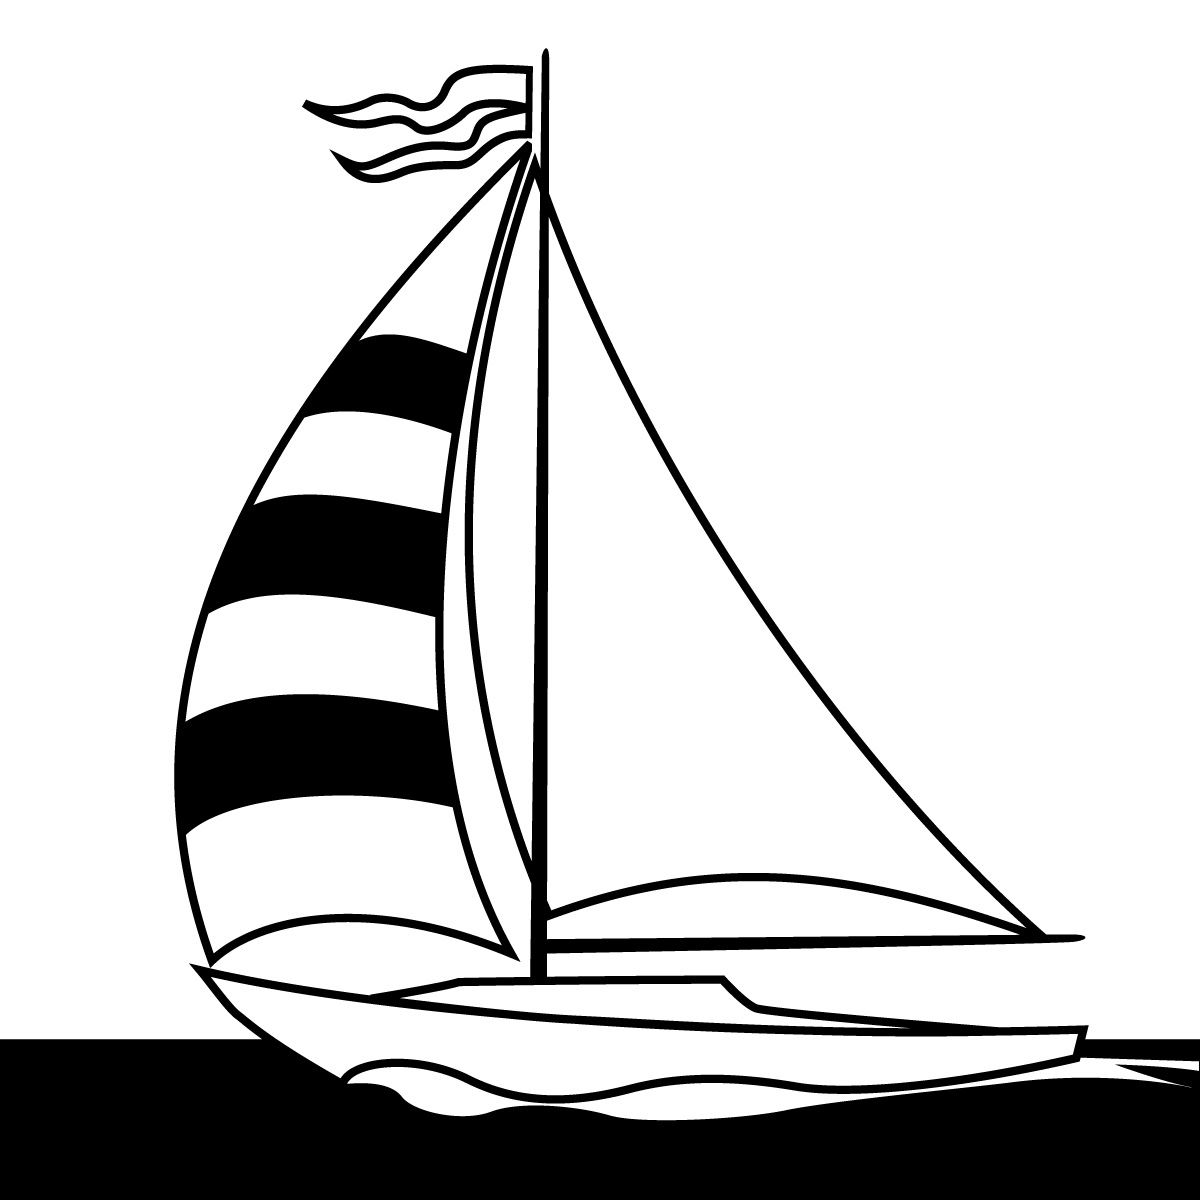 Sail clipart yatch. Sailing boat drawing of